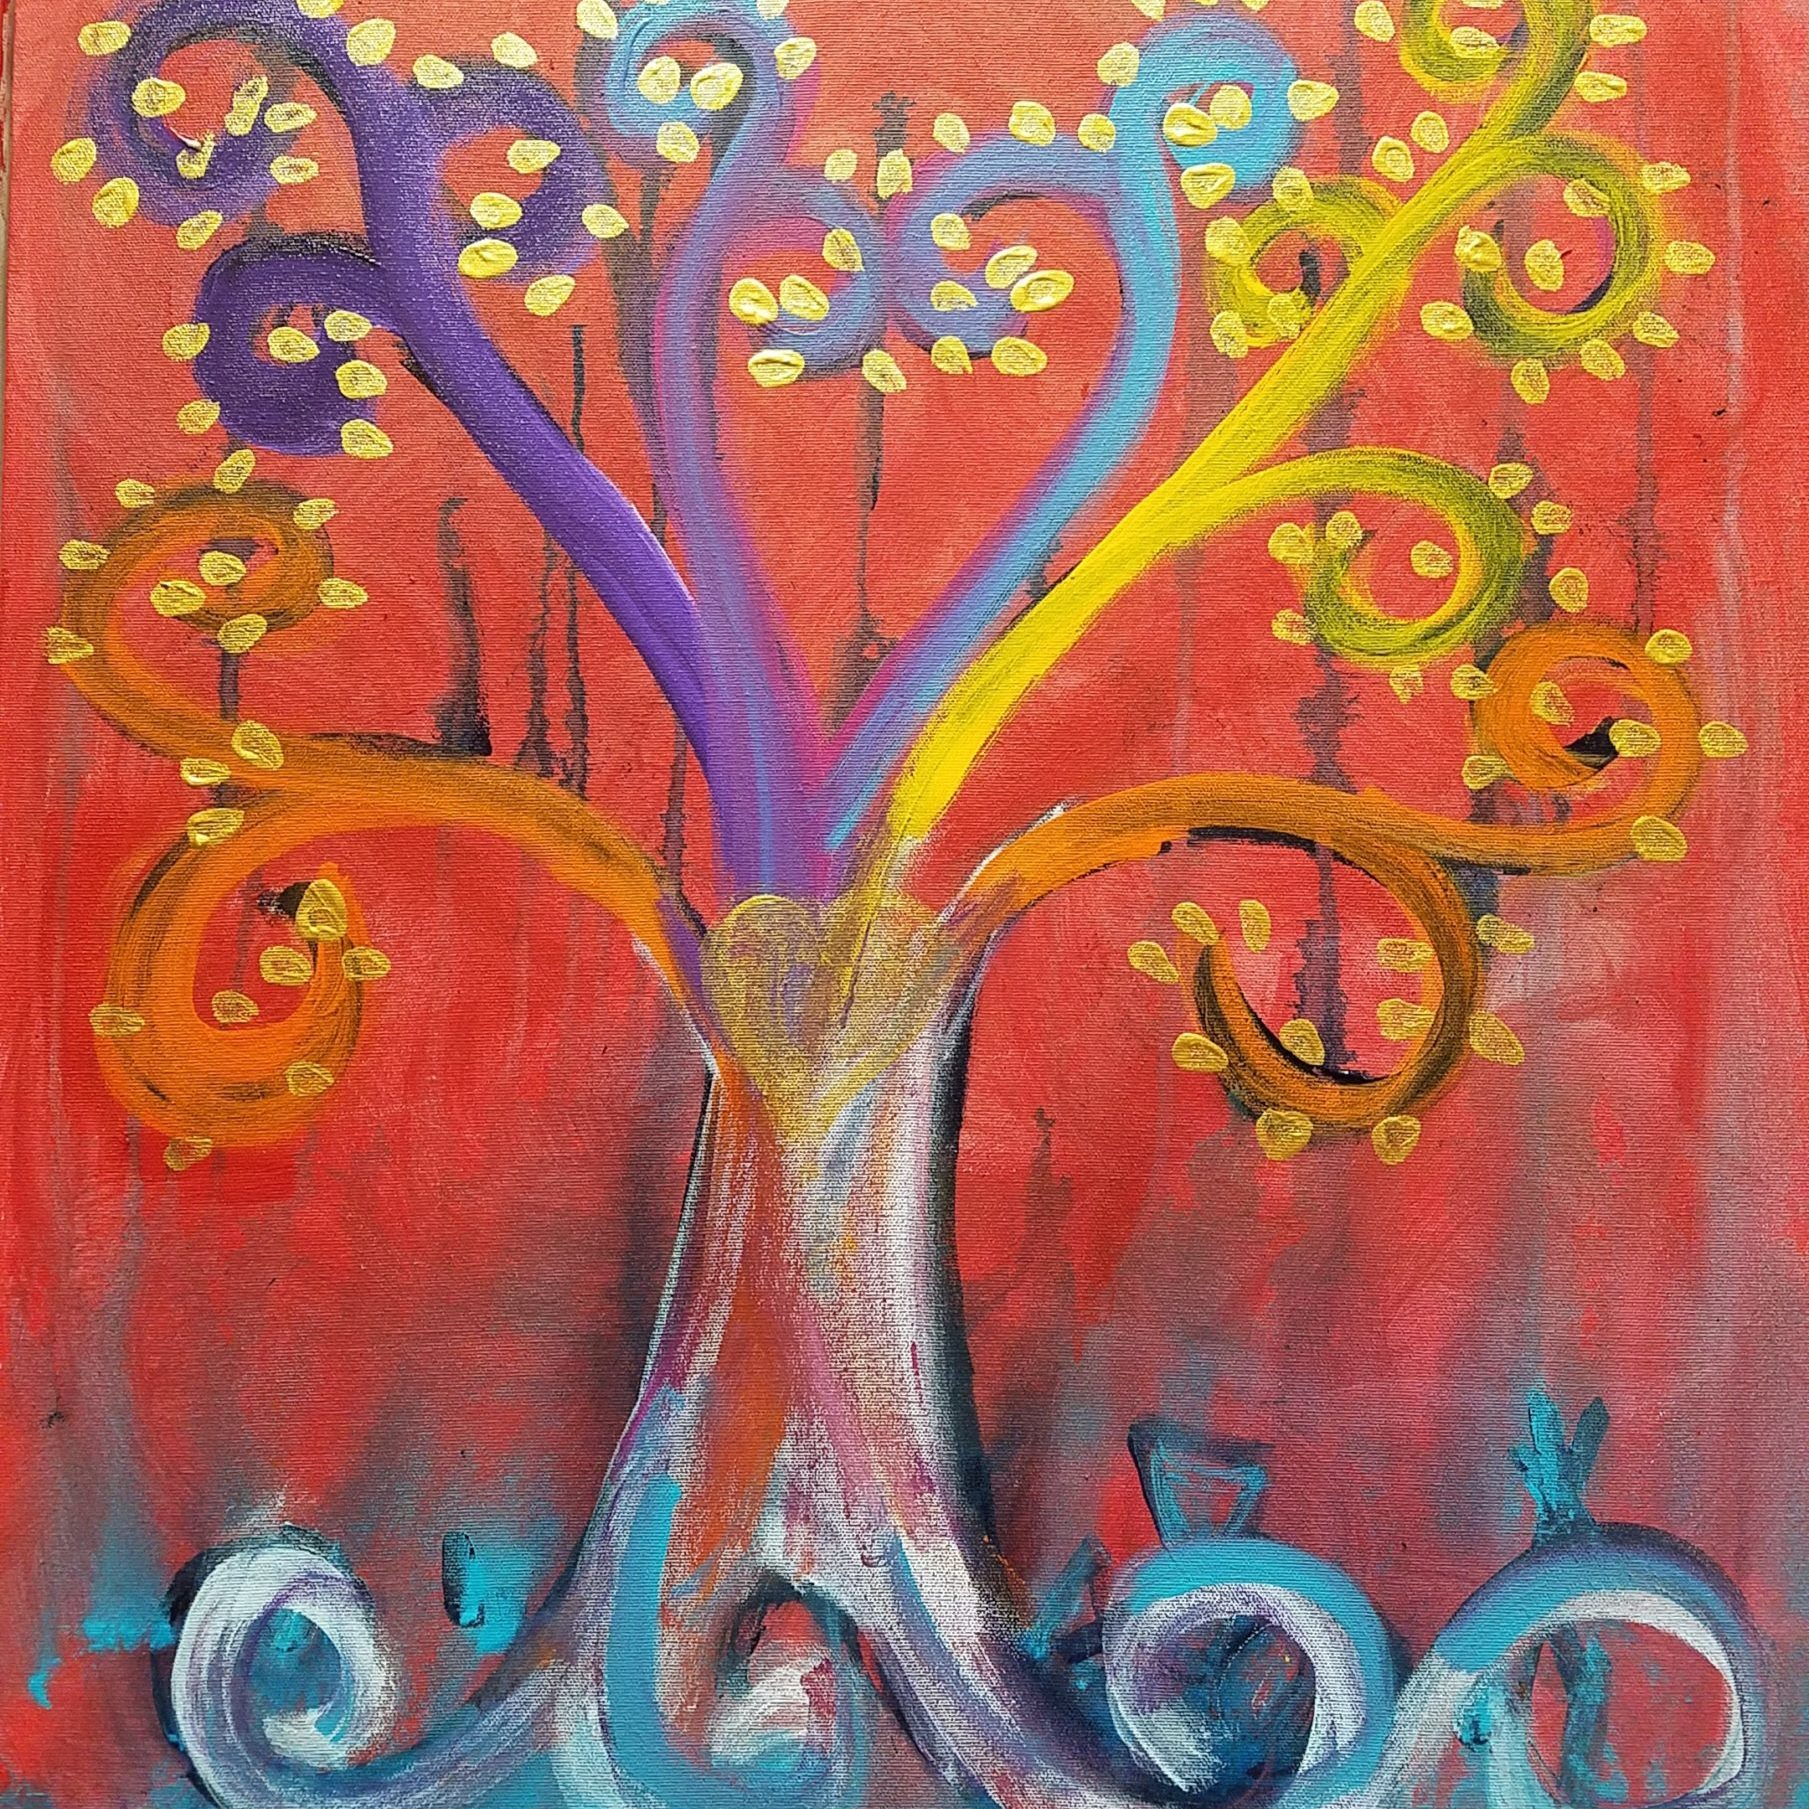 Alchemical Tree acrylic on canvas 24 x 24 $200